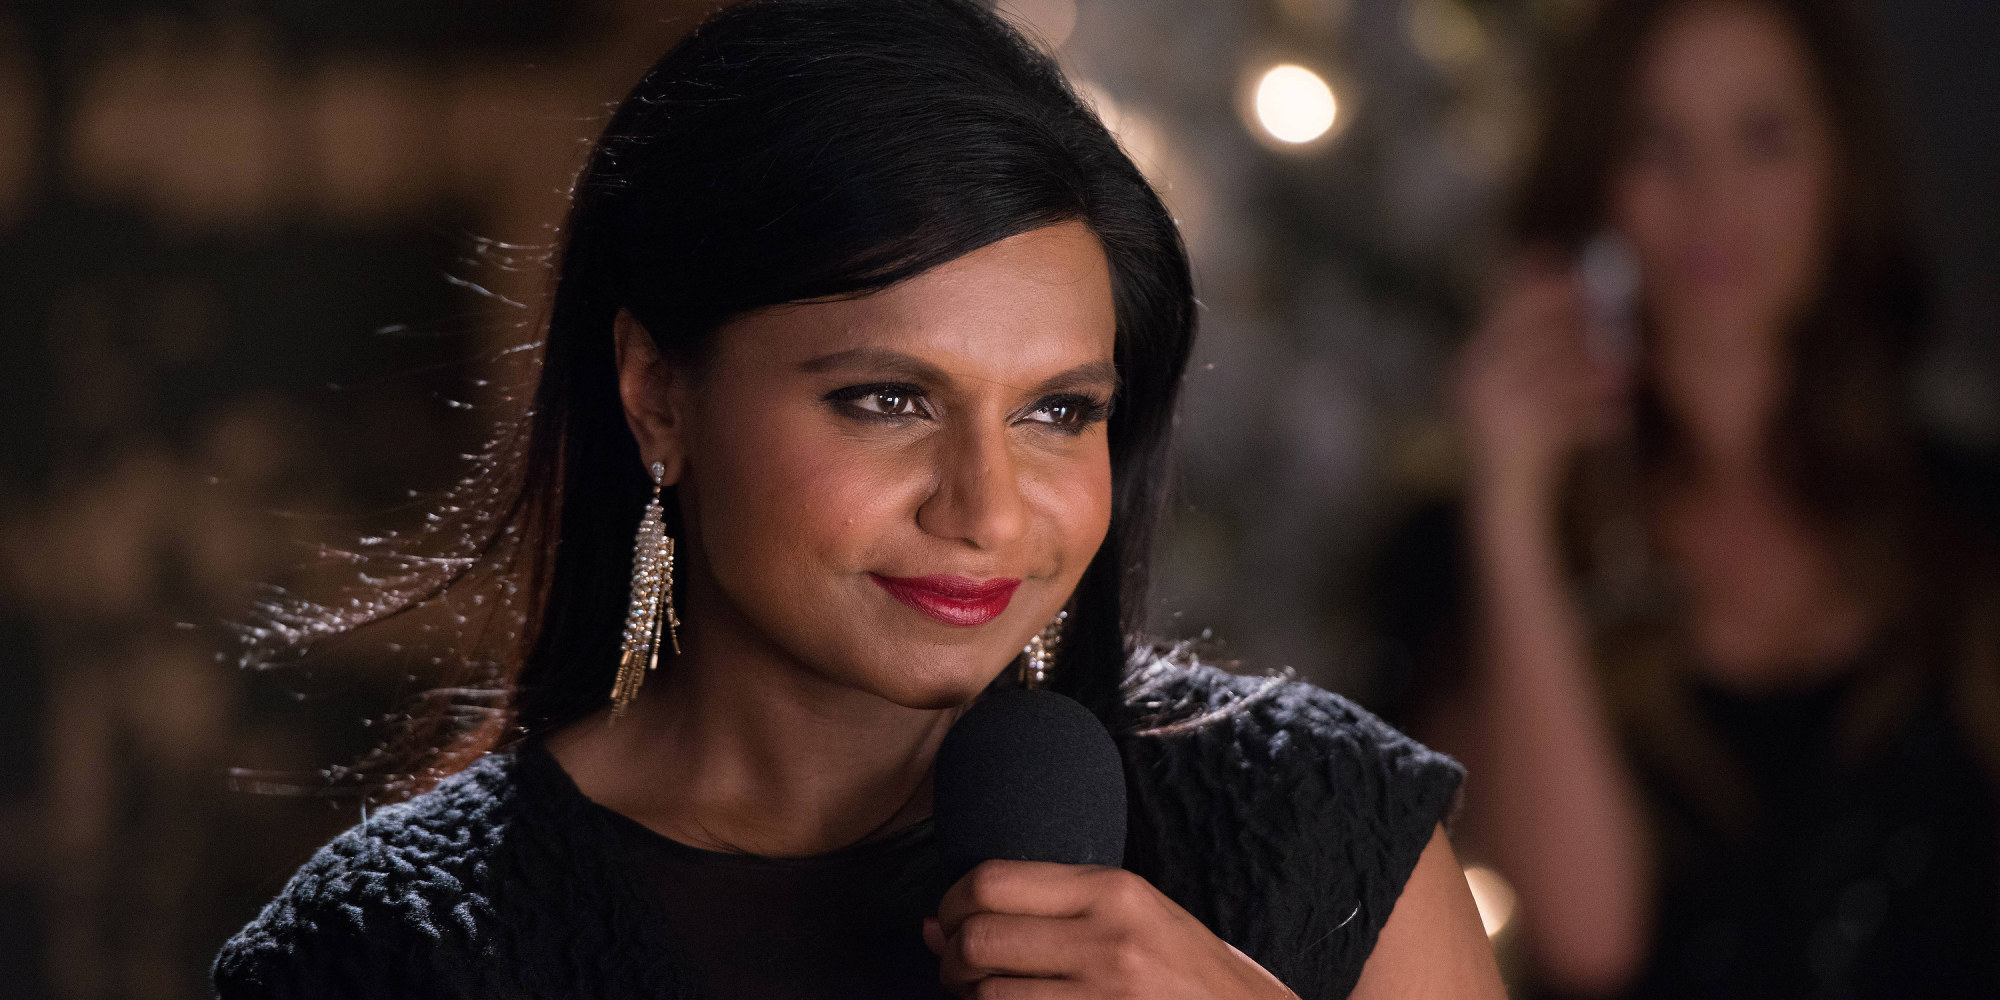 Mindy Kaling Wallpapers Images Photos Pictures Backgrounds 2000x1000